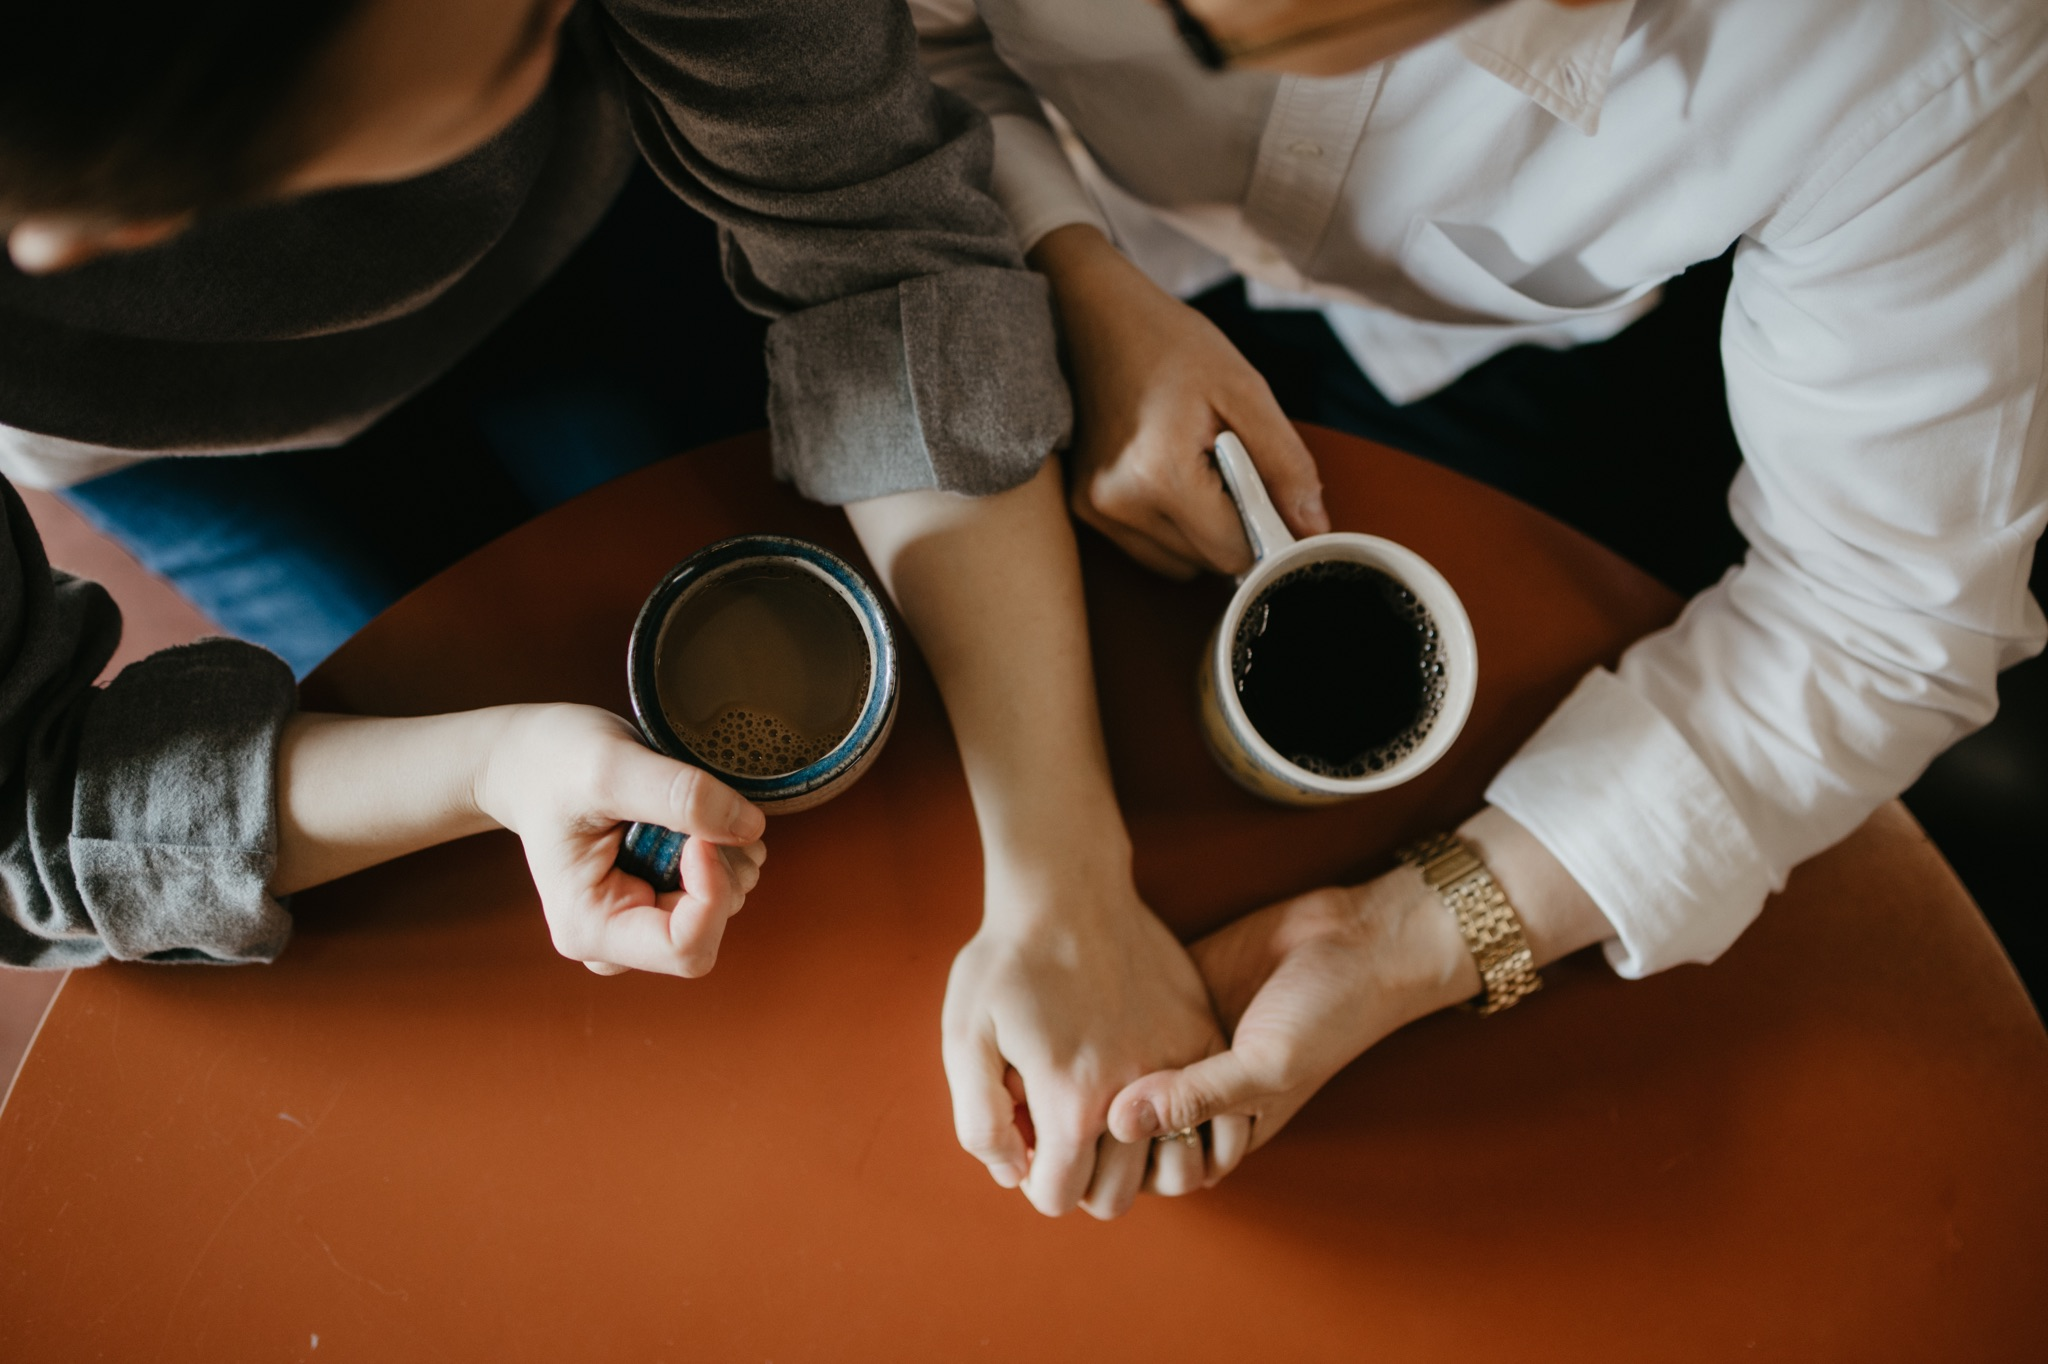 bride and bride's hands and coffee mugs